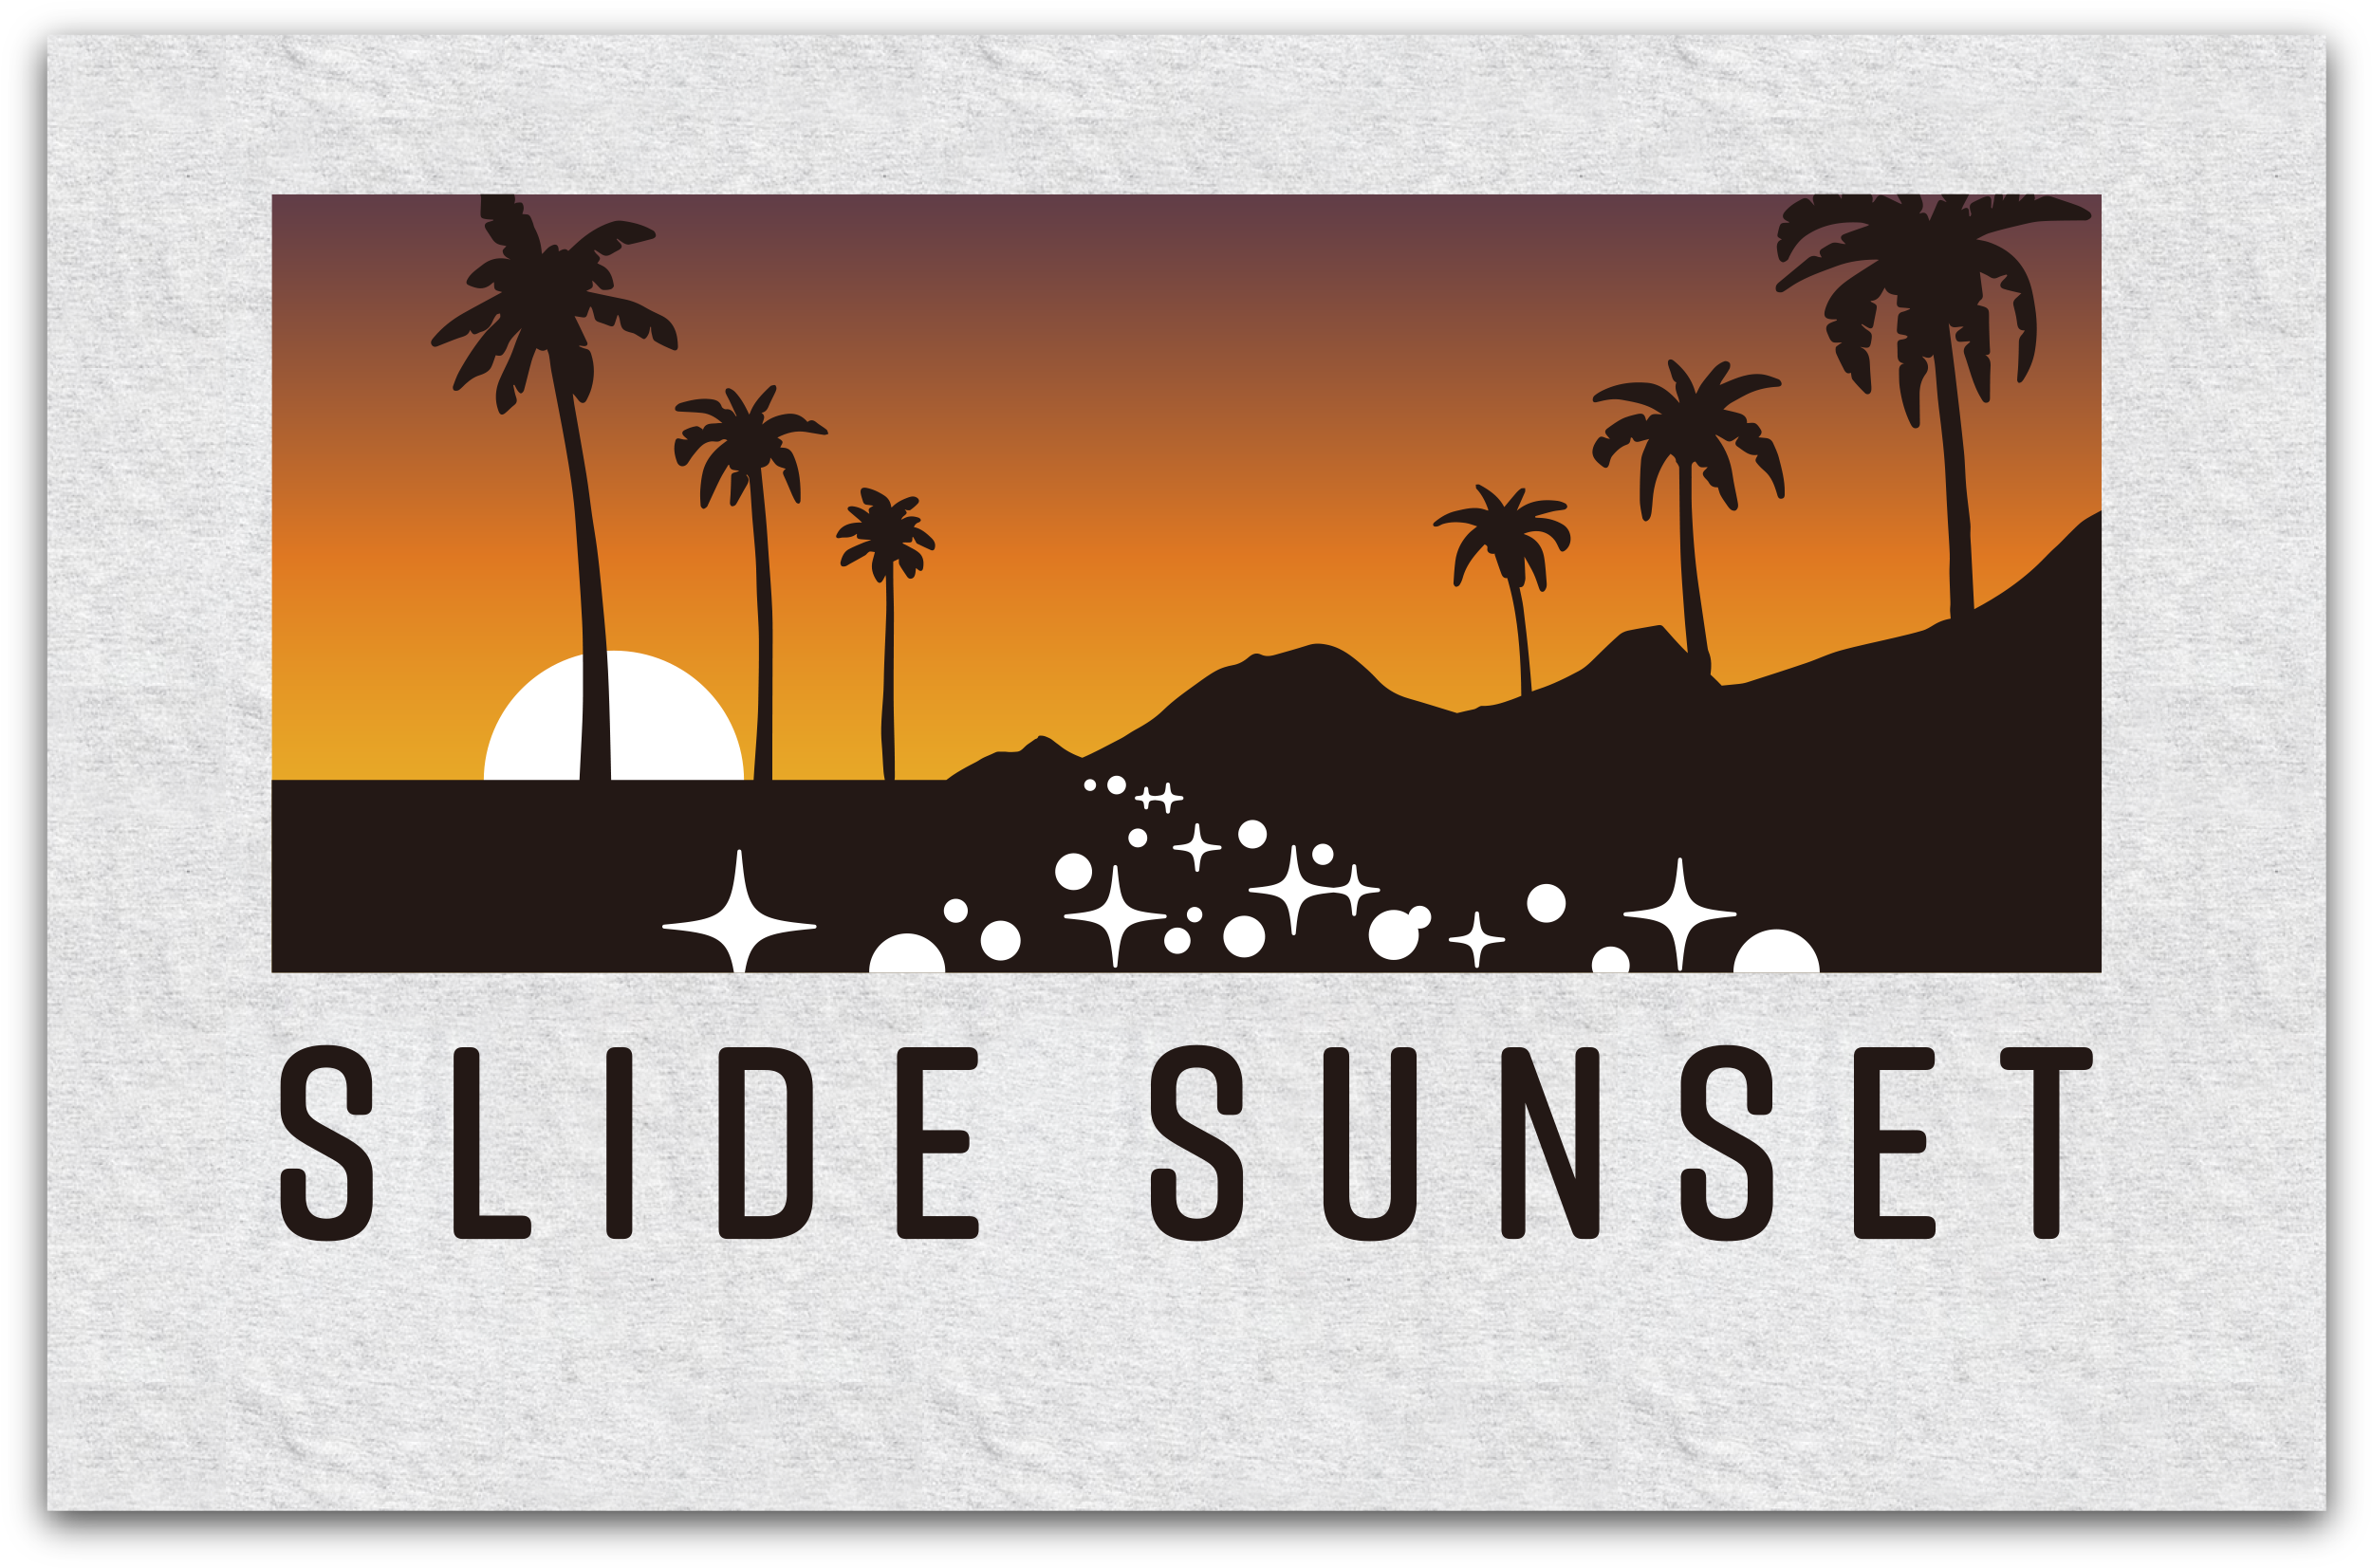 SLIDE SUNSET